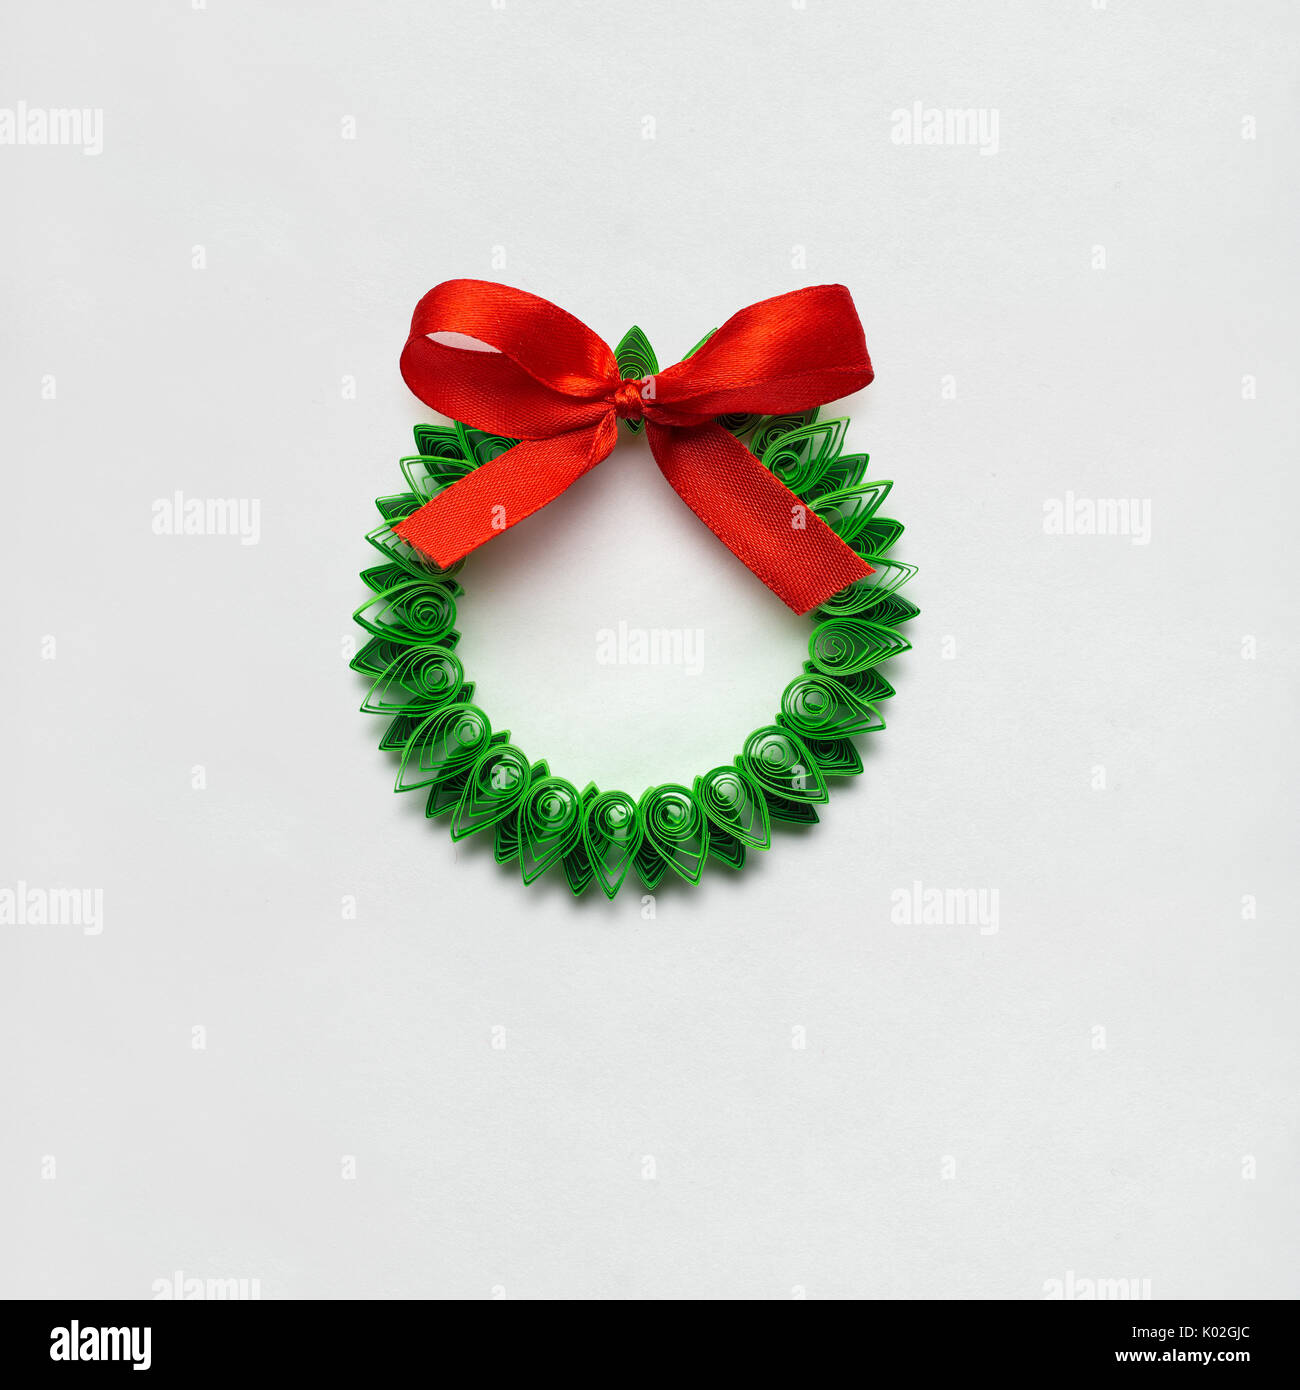 Paper Quilling Christmas Card Stock Photos & Paper Quilling ...